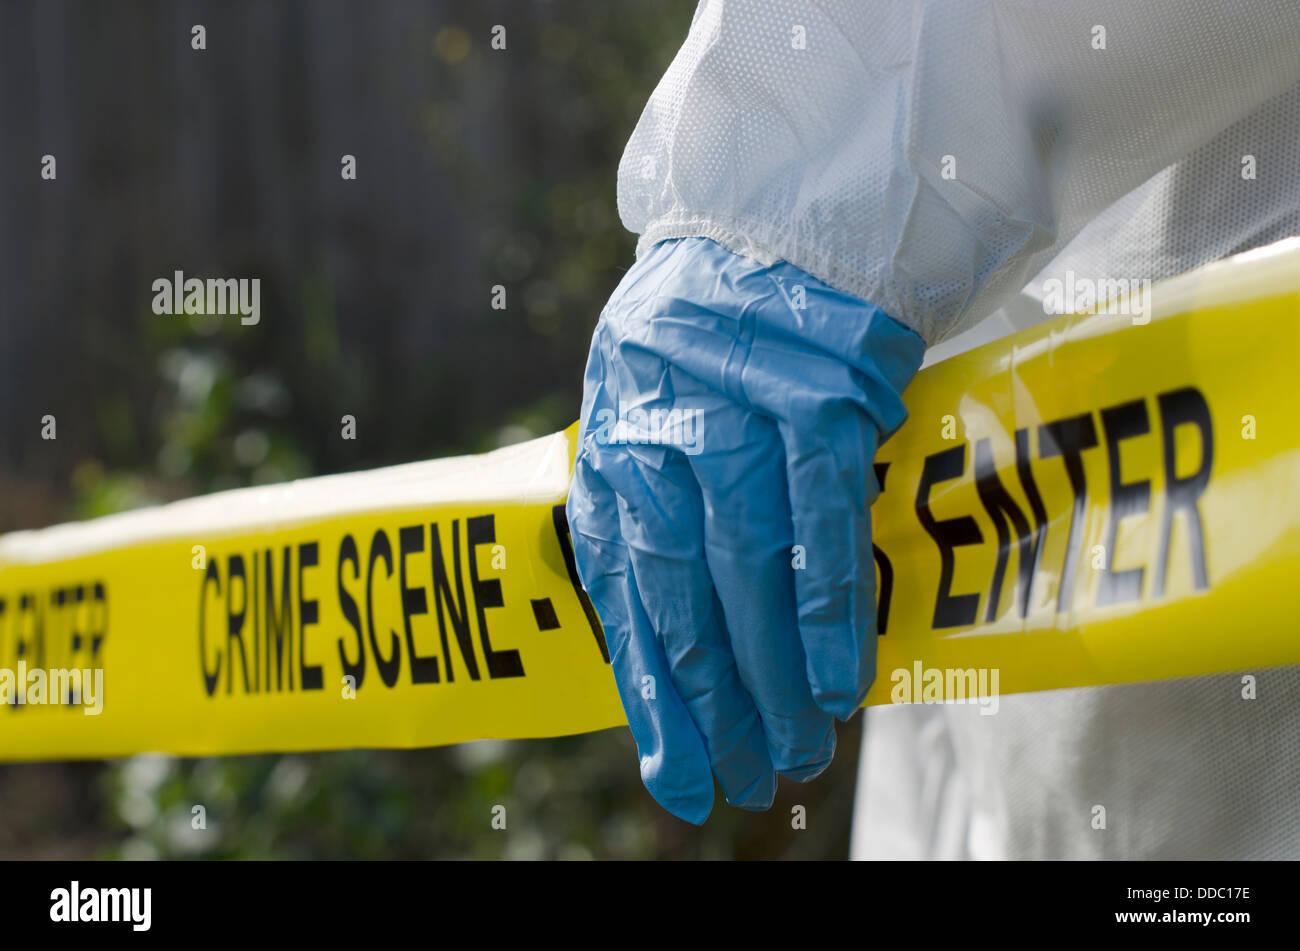 Forensic investigator working at a crime scene - Stock Image